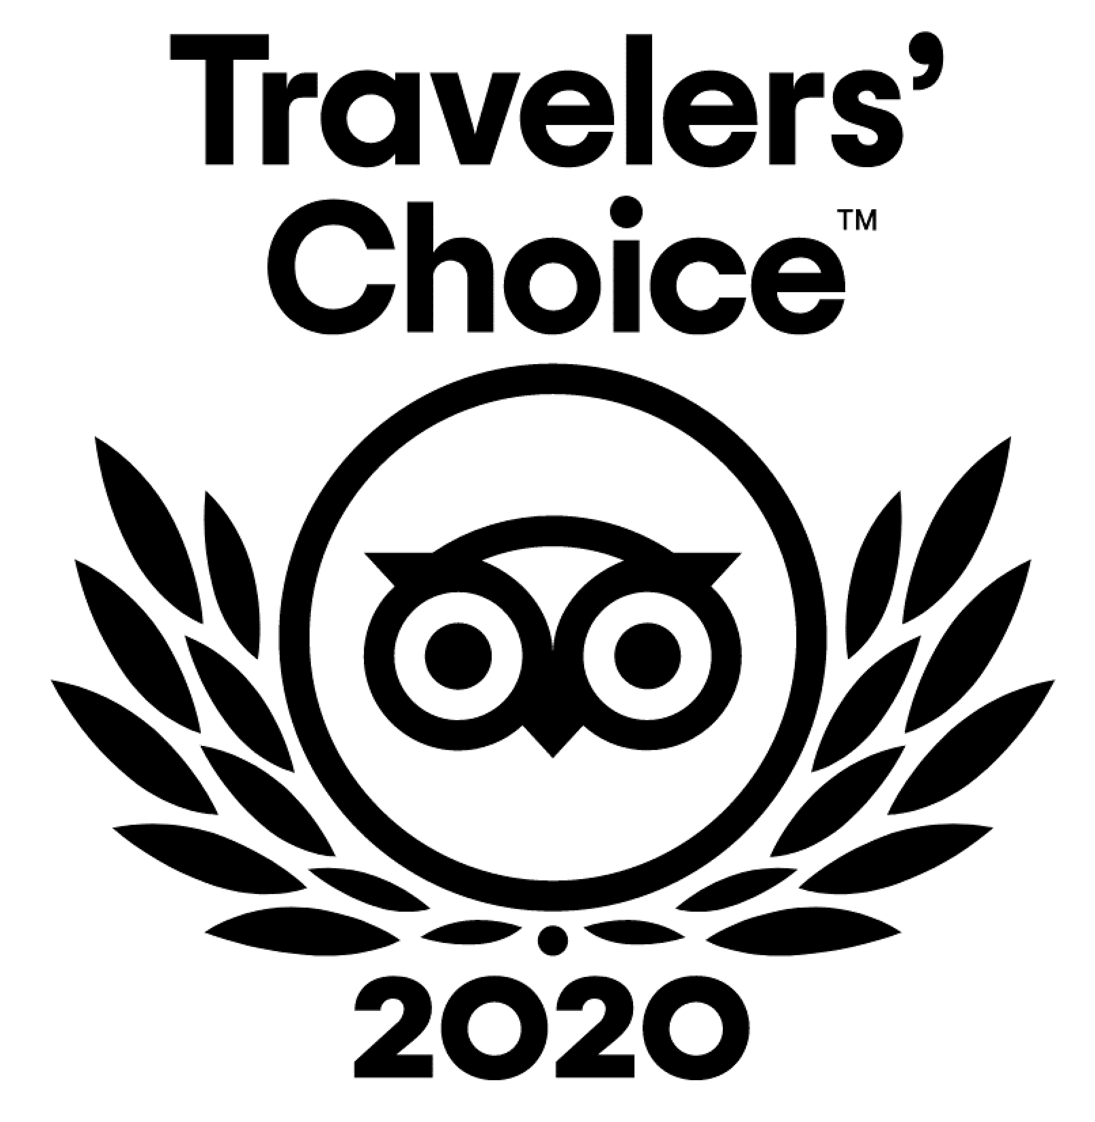 Trip Advisor, Certificats excellence 2020